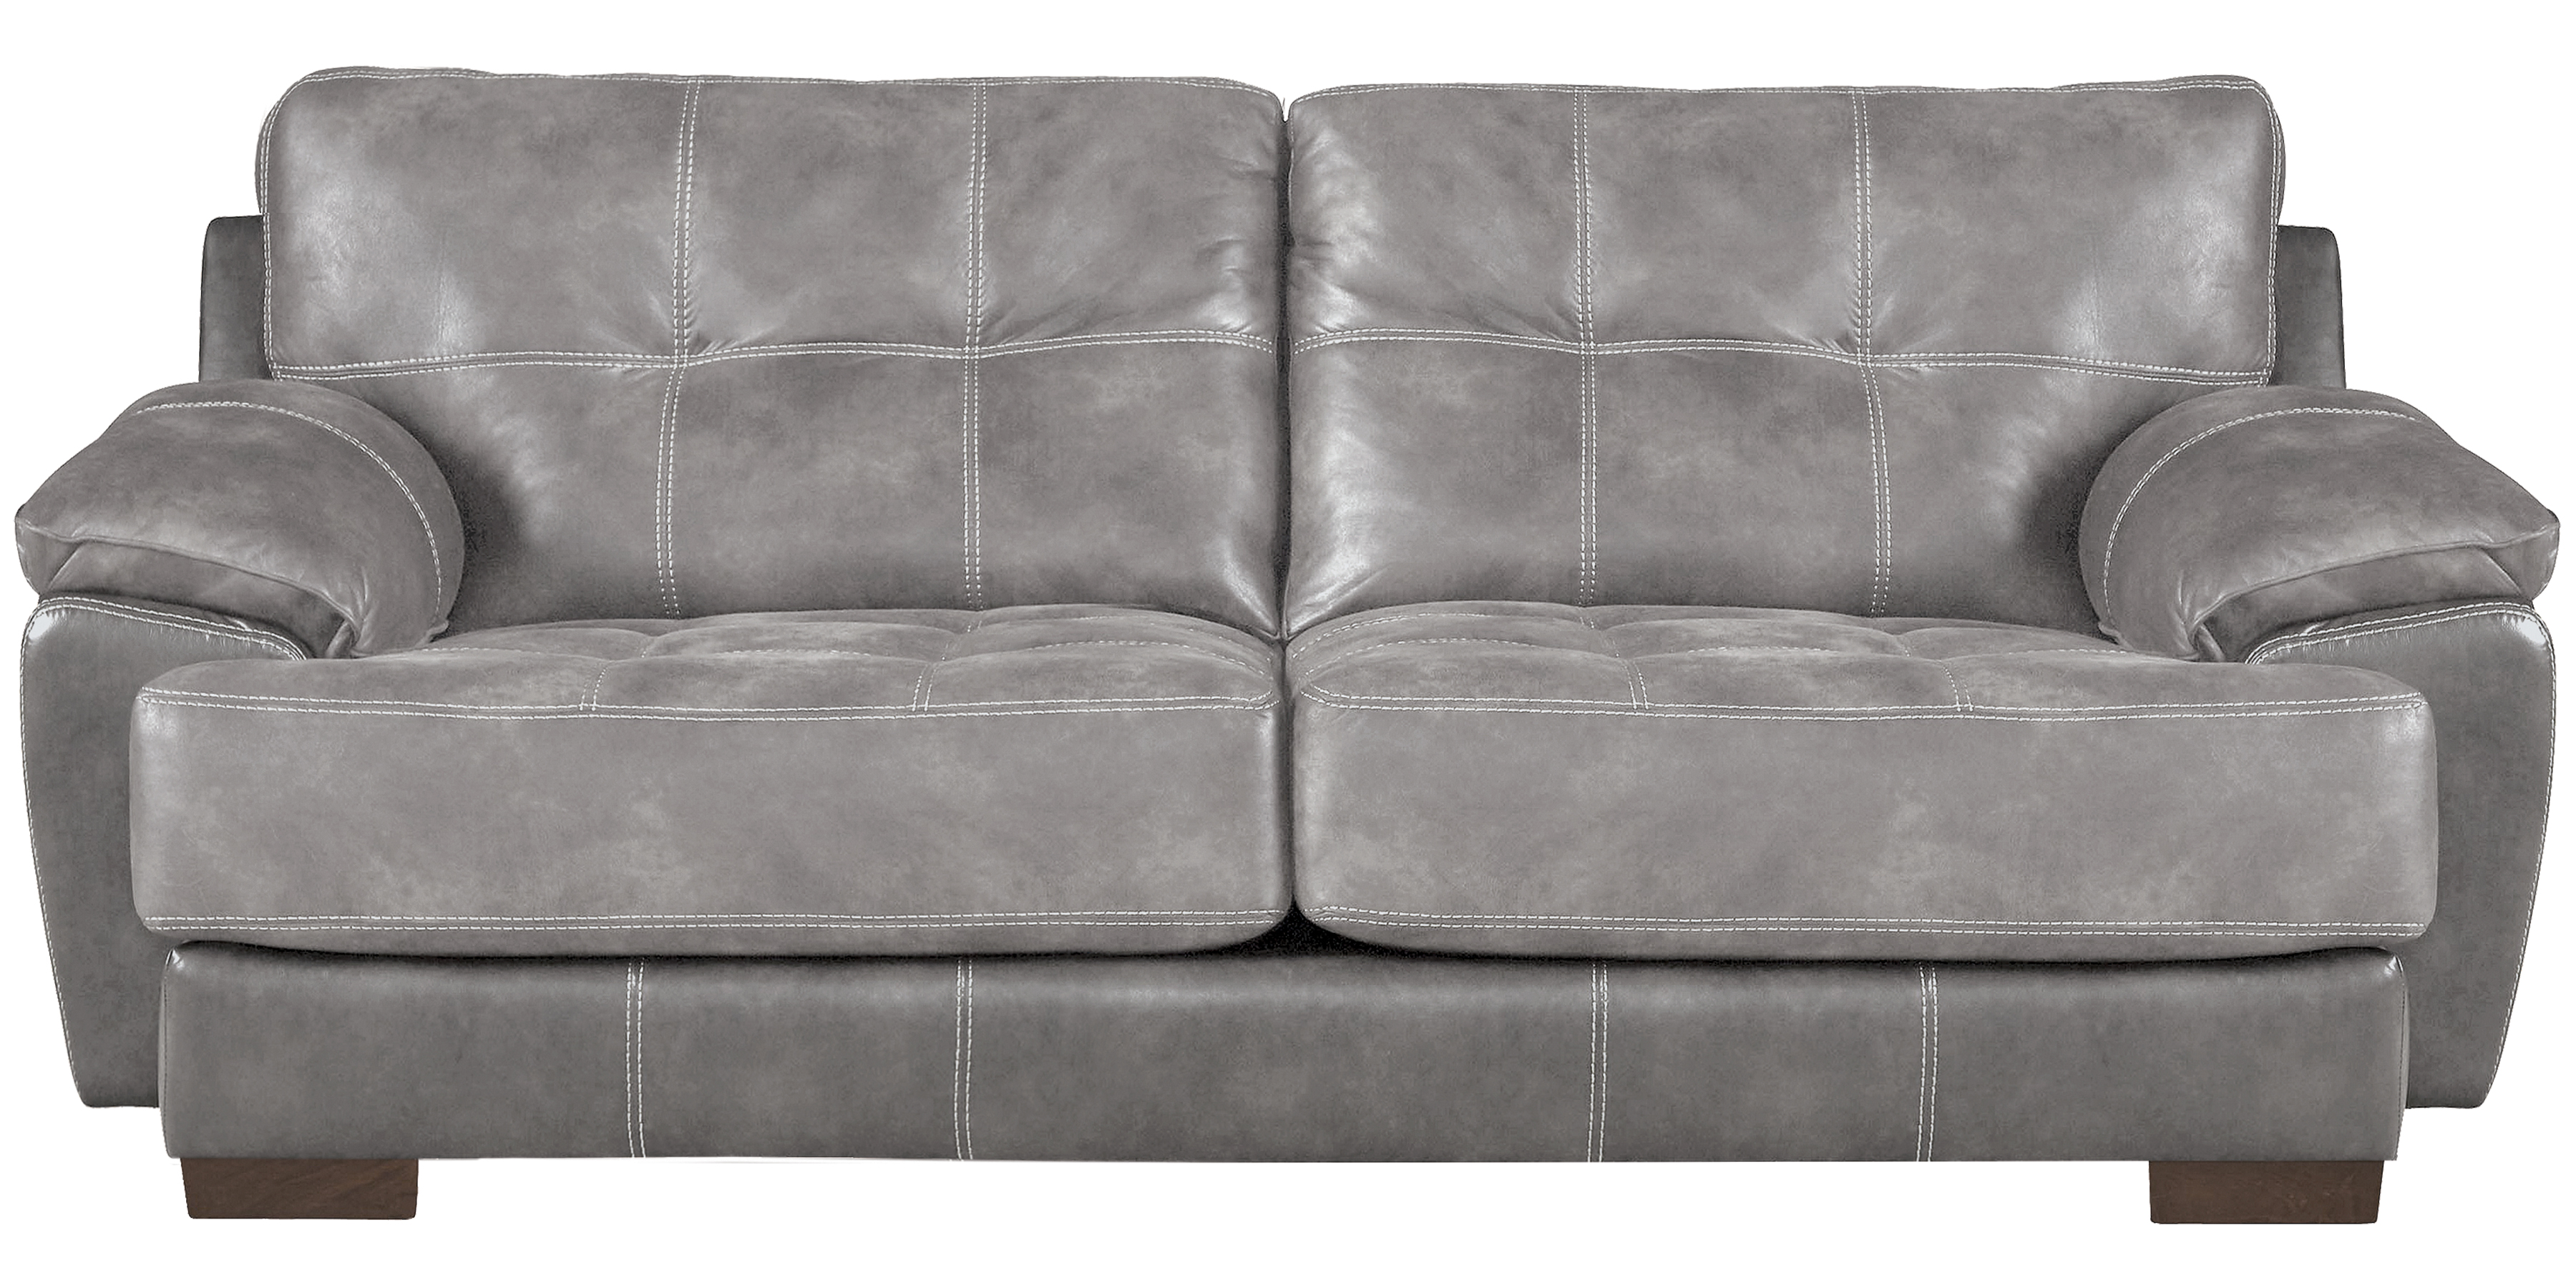 Jackson Furniture Drummond Sofa 4296 03